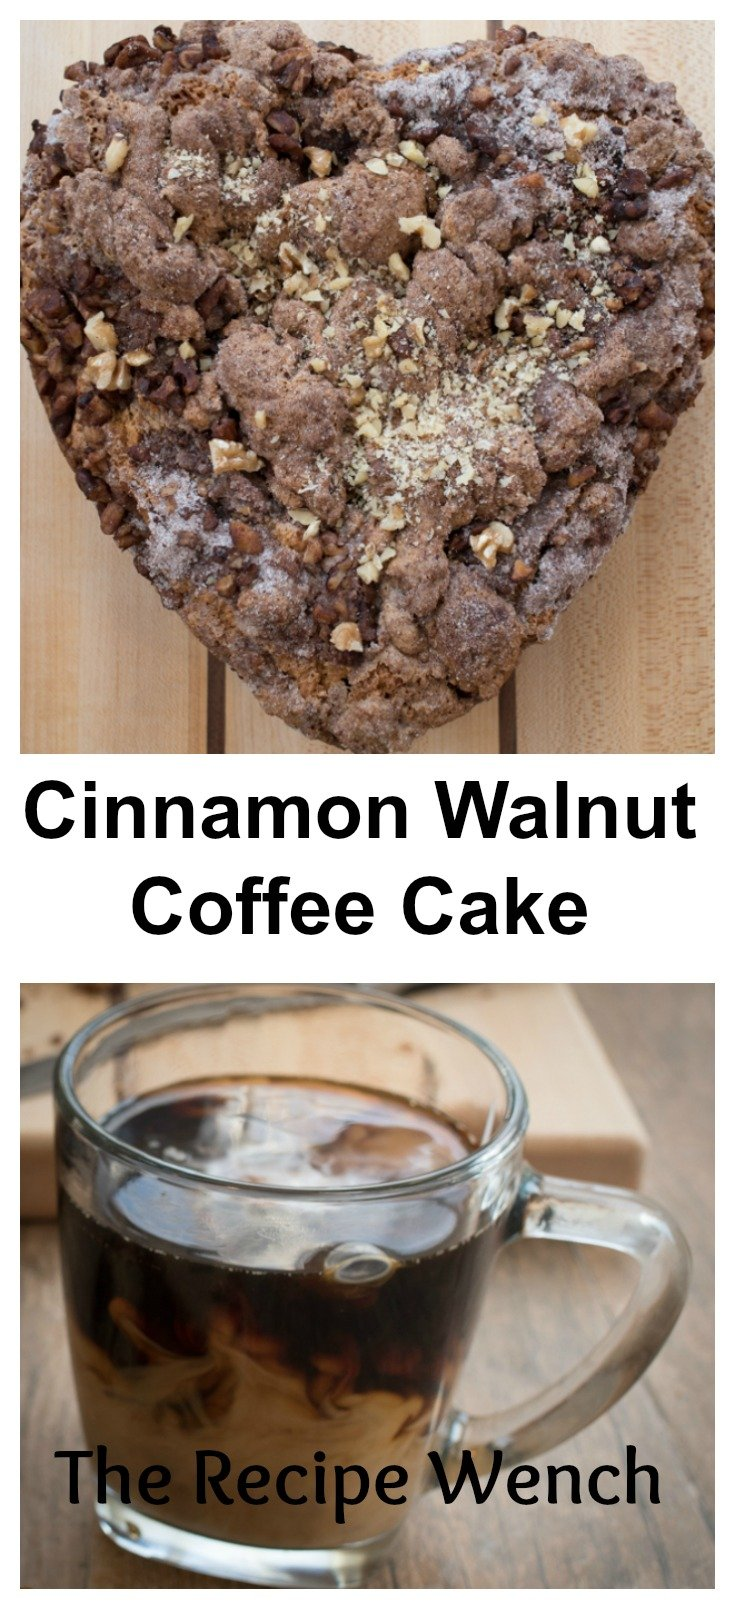 Here's a great recipe for cinnamon walnut coffee cake. Pour yourself a big glass of milk or hot cup of coffee and enjoy! -